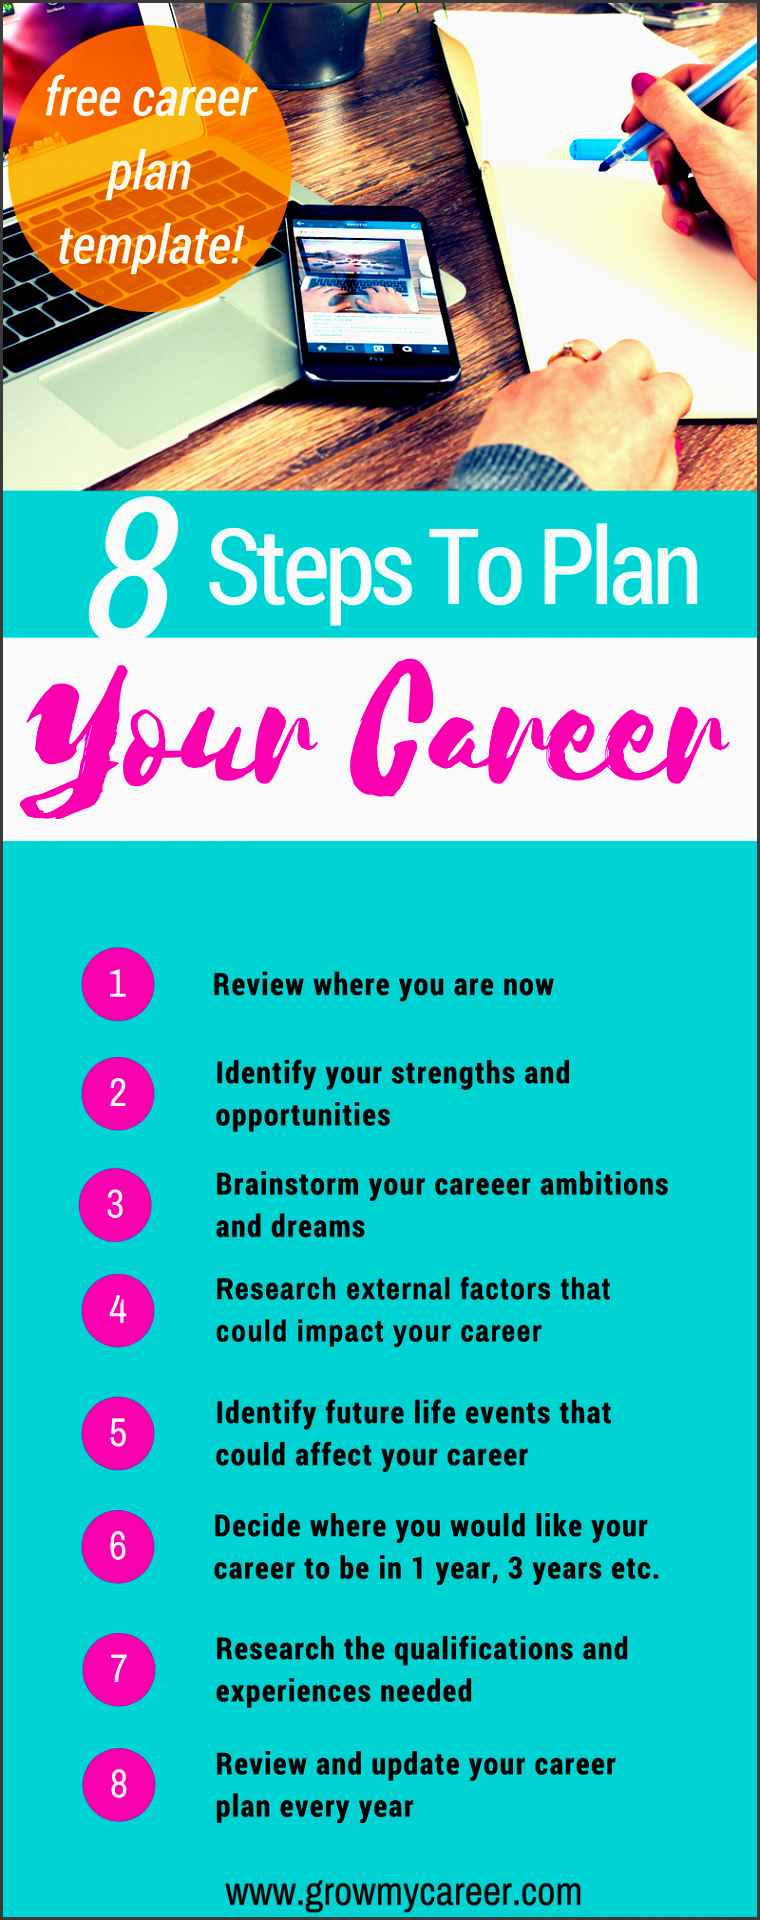 develop a robust career plan includes a free template that takes you through a prehensive